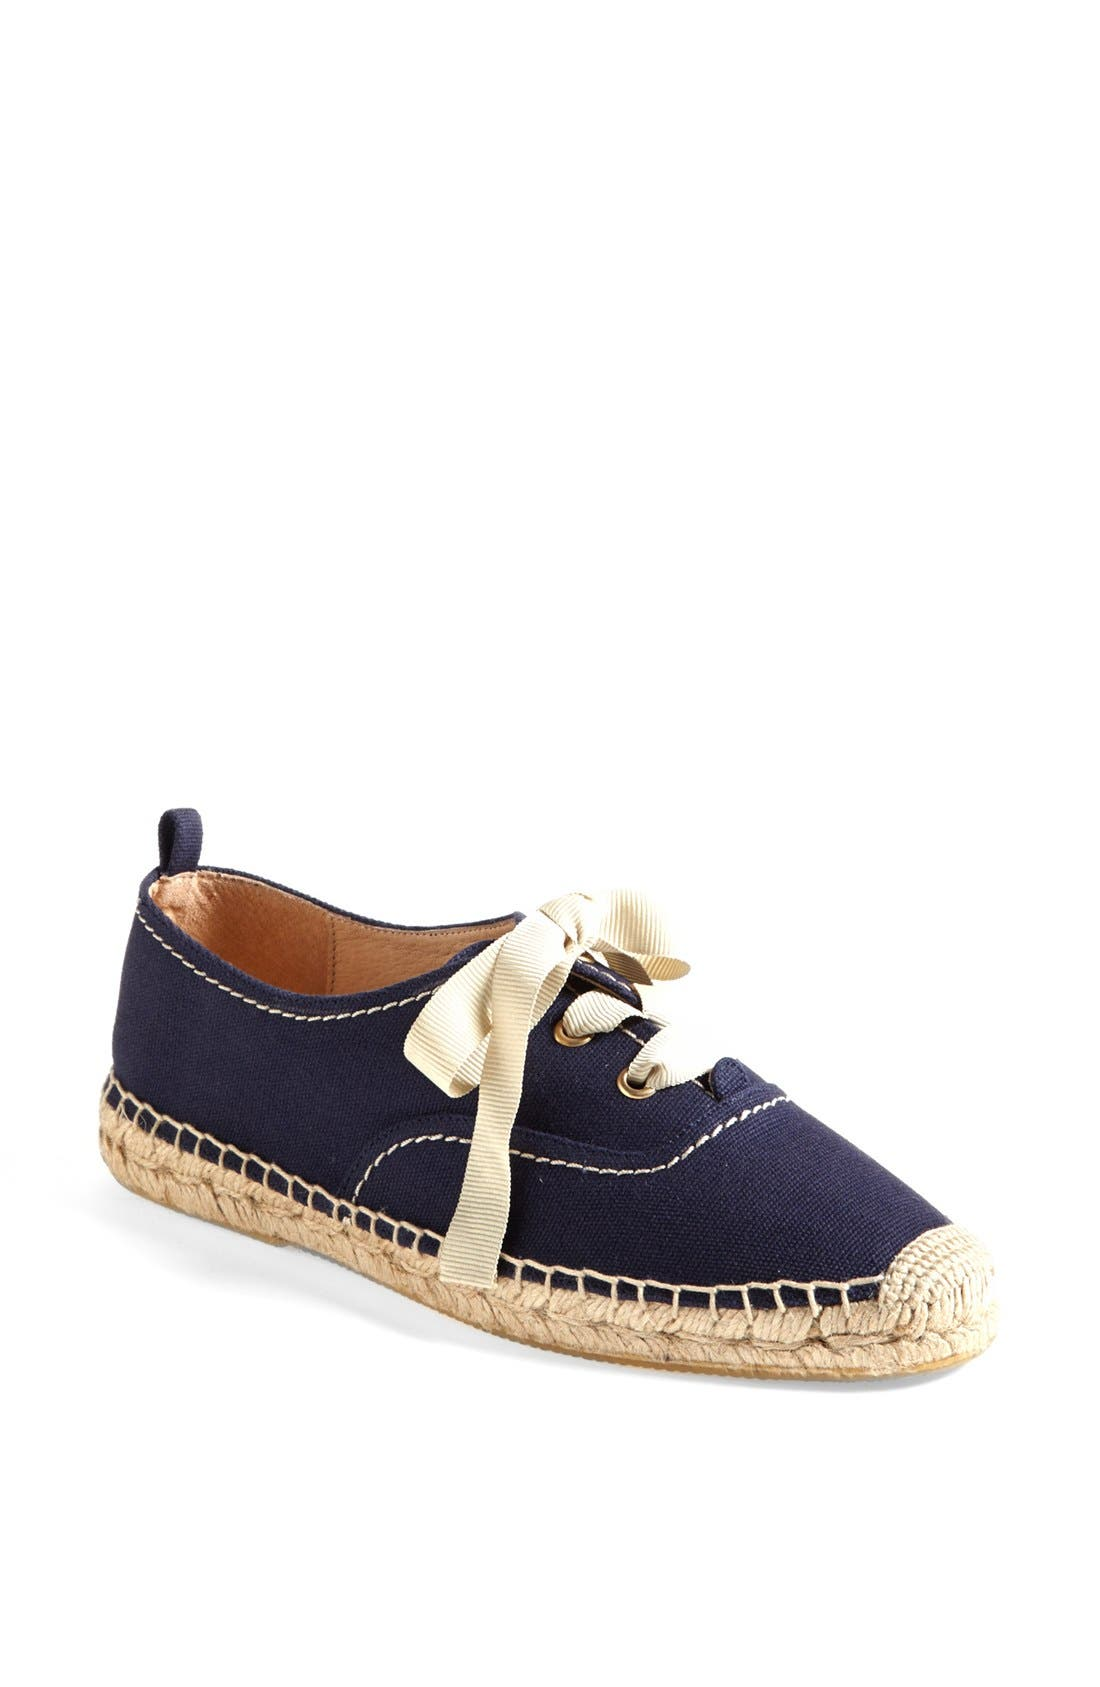 Main Image - kate spade new york 'lina' espadrille oxford